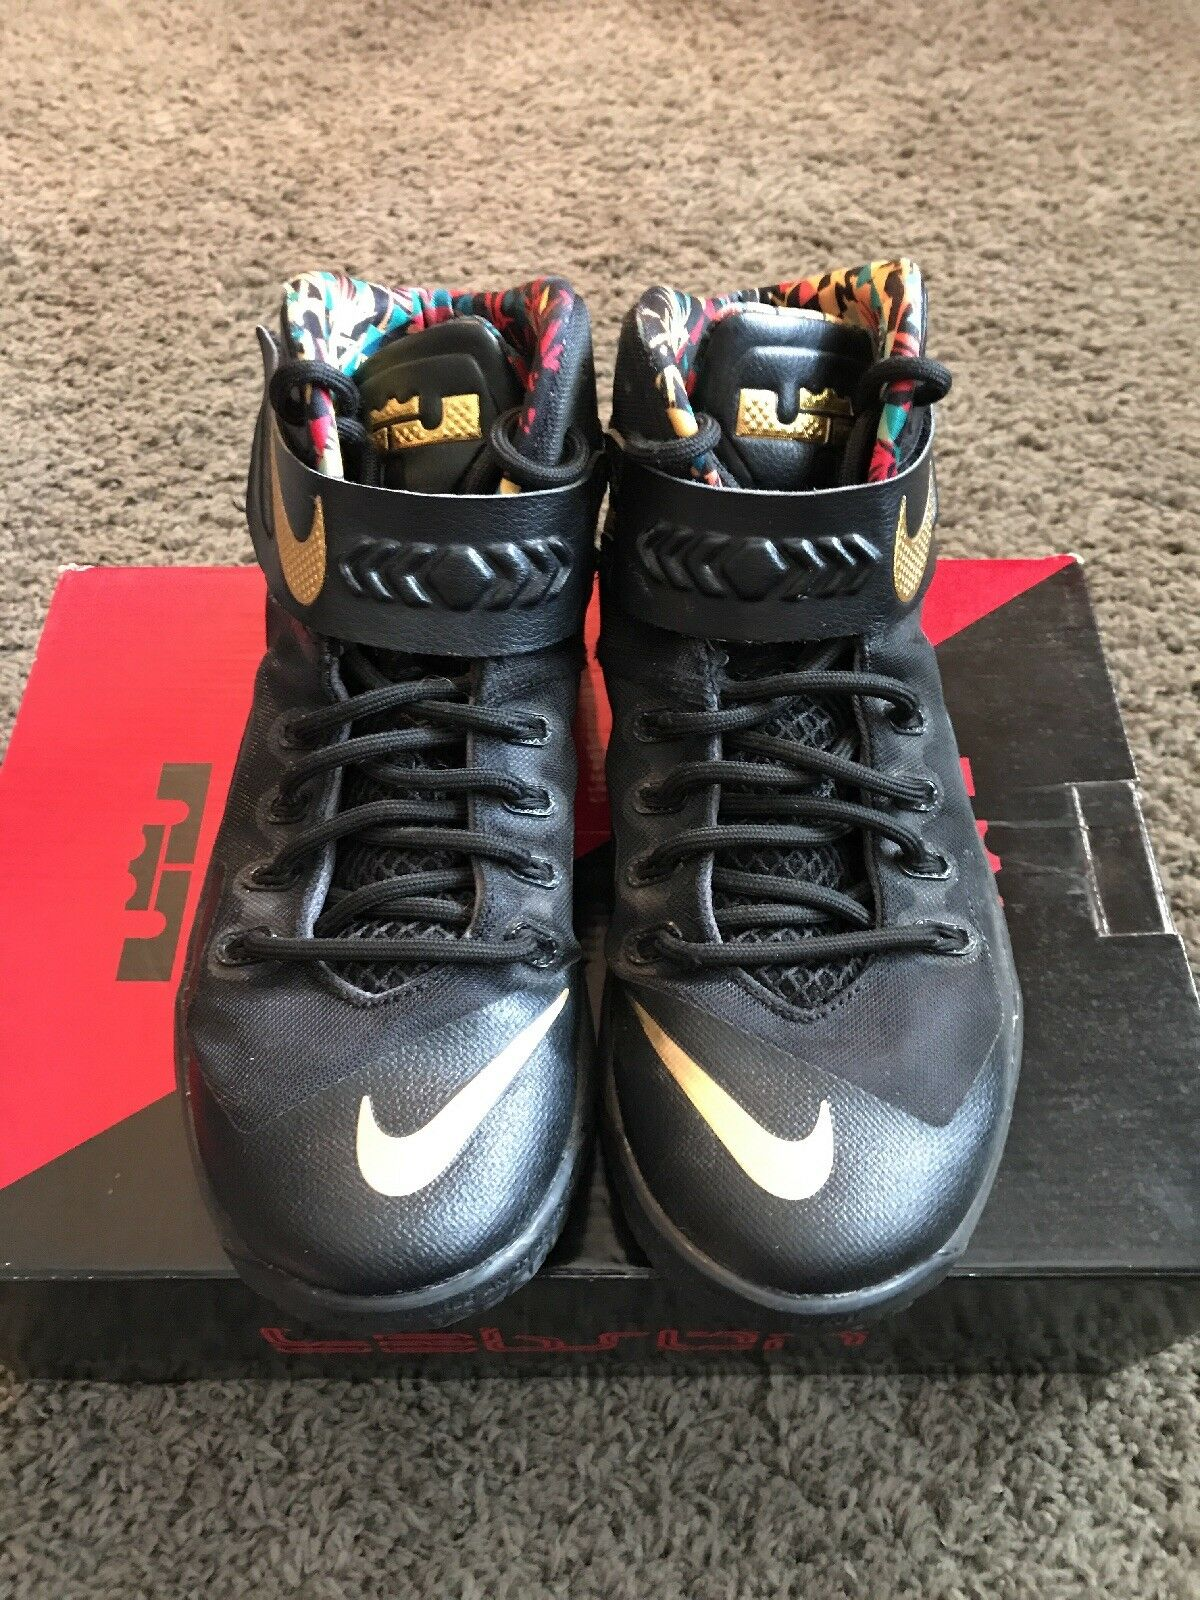 Nike Zoom Lebron Soldier 8 Premium Watch The Throne